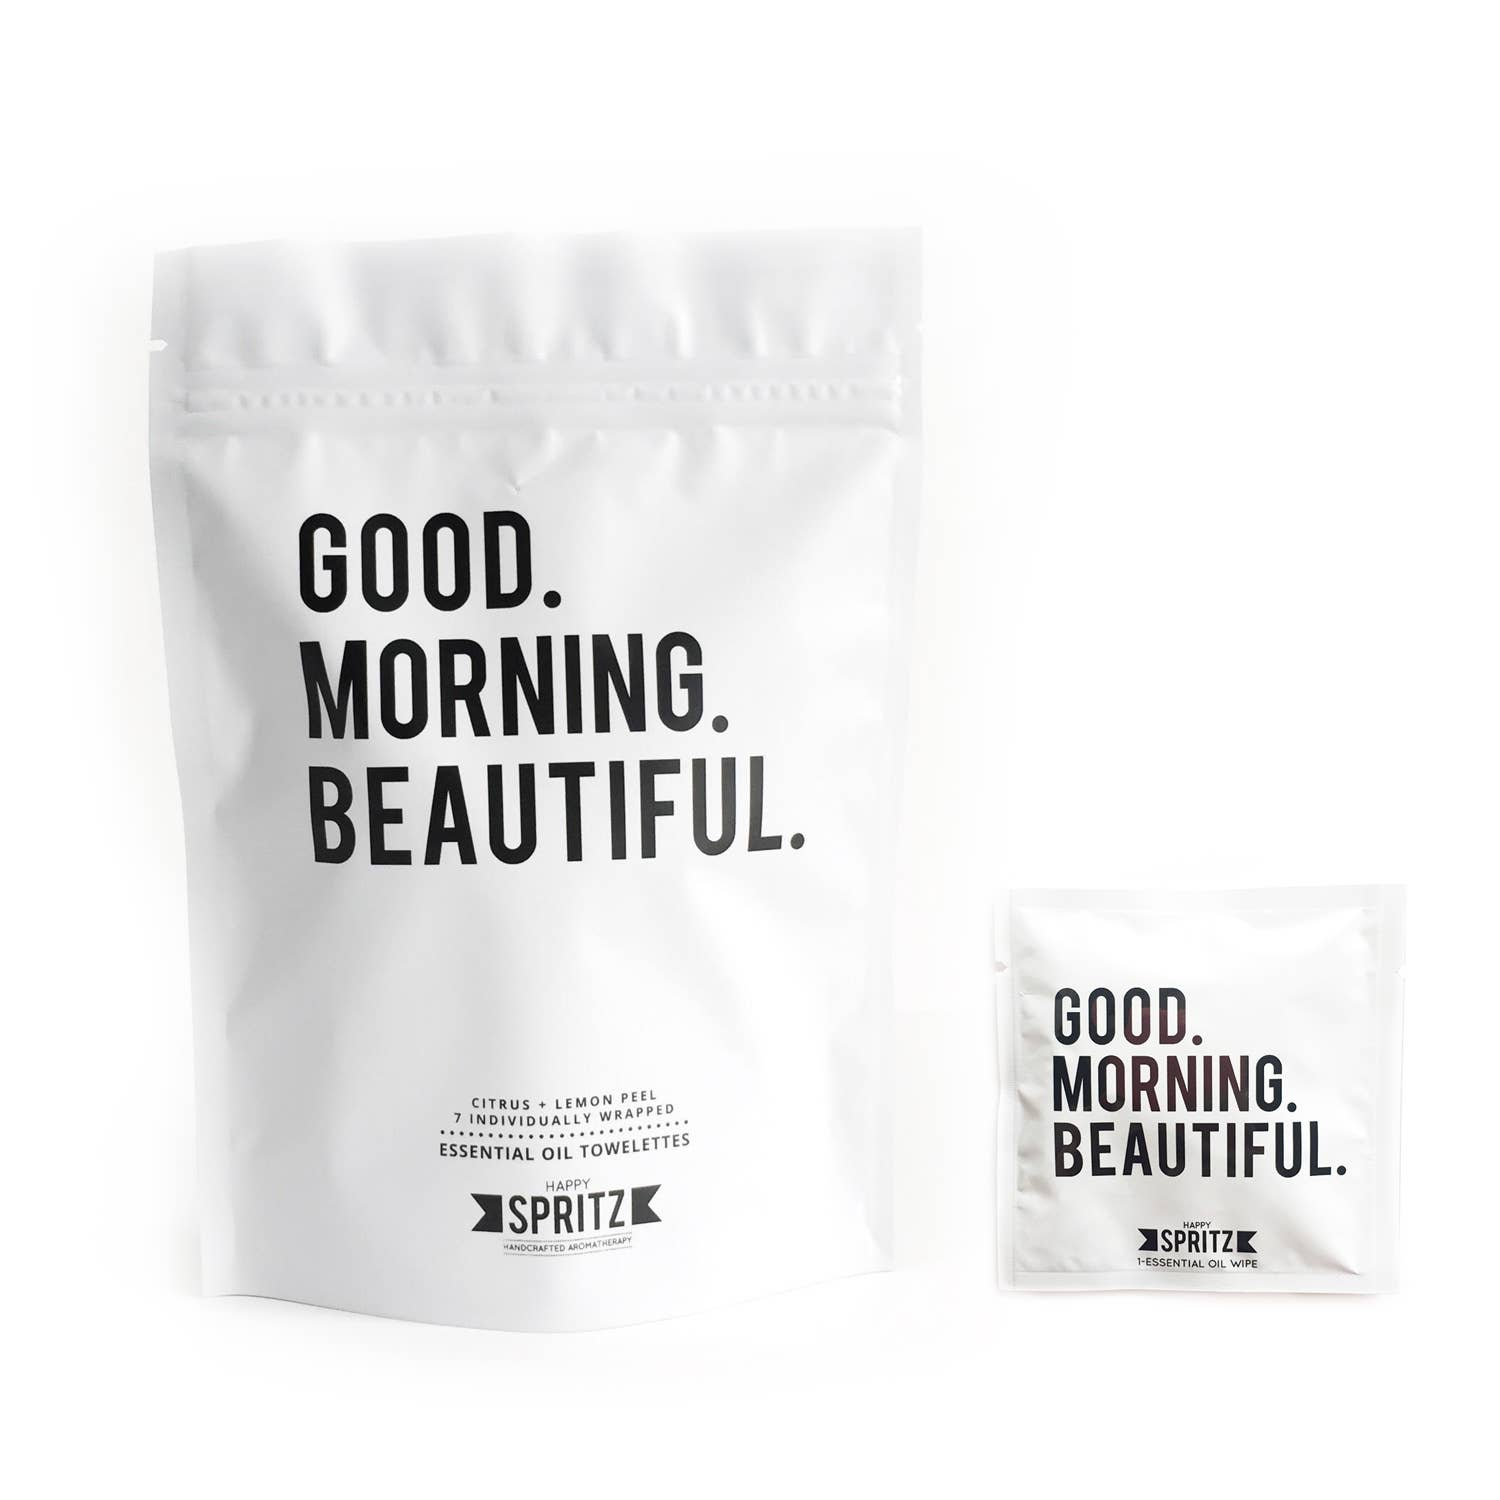 Good Morning Beautiful Towelette 7 Day Bag - The Lake and Company